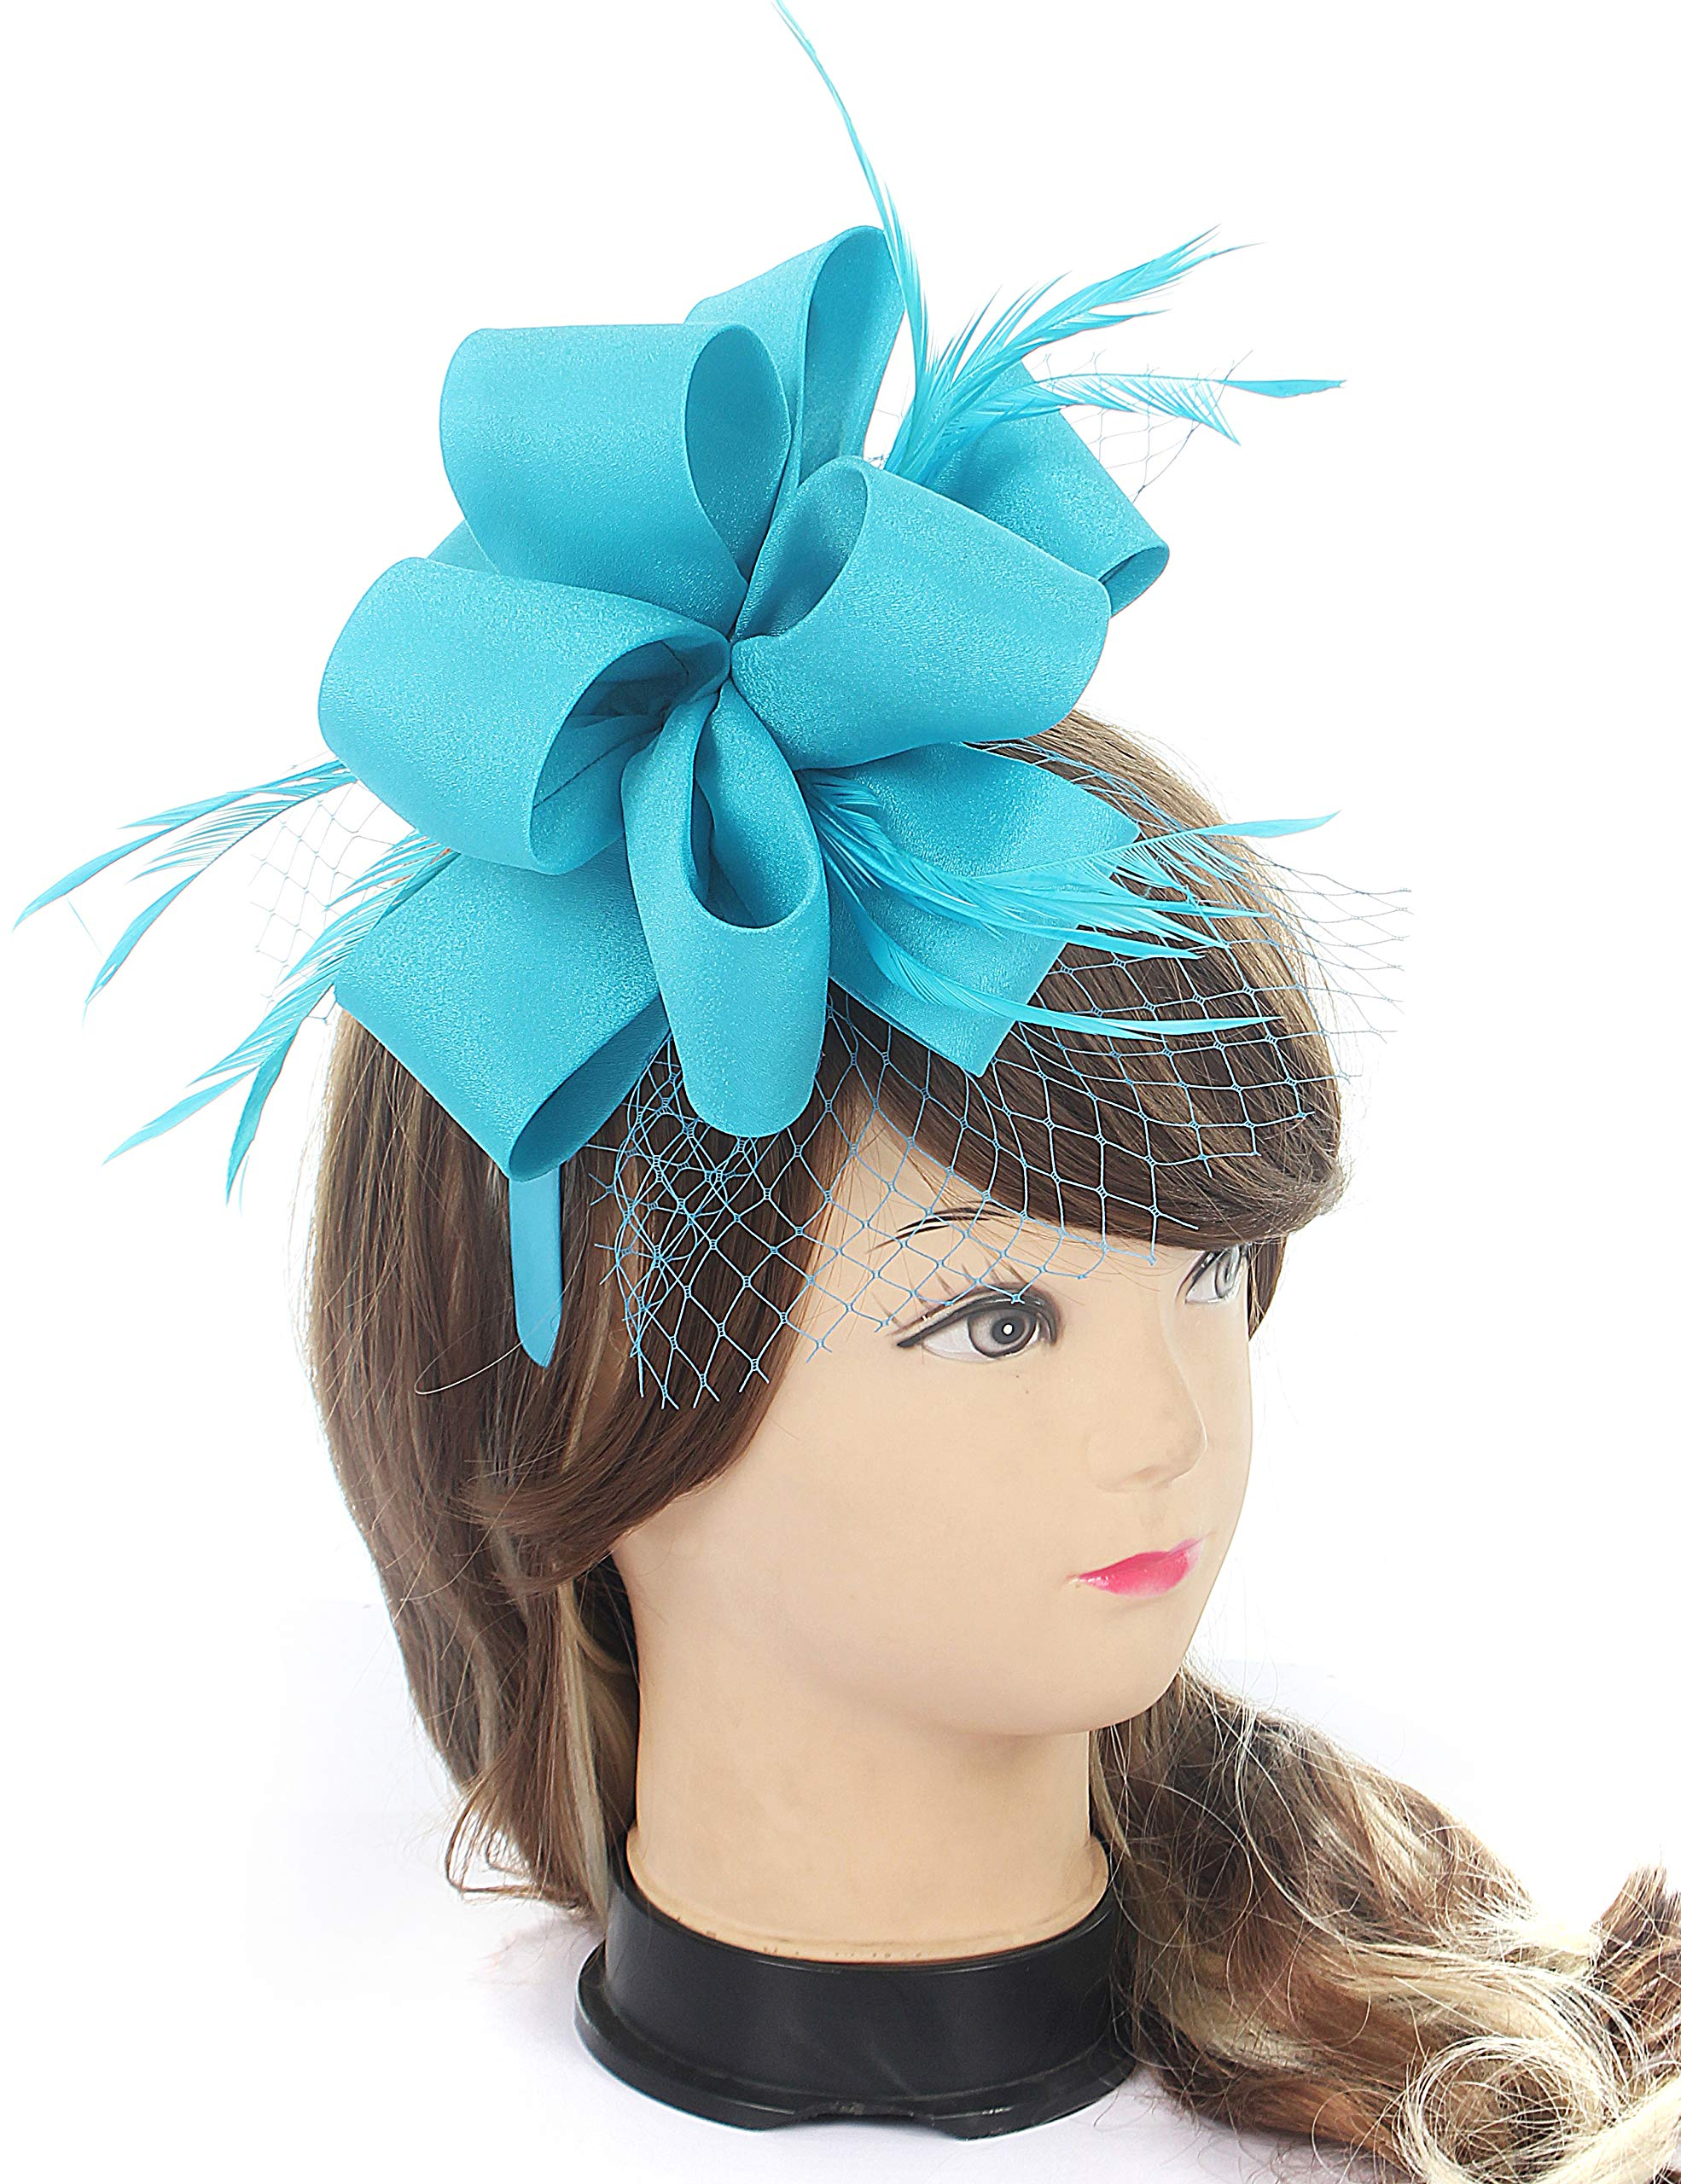 Myjoyday Fascinator Hats Satin Feather Mesh Headband Wedding Tea Party Headpieces for Girls and Women (Blue)